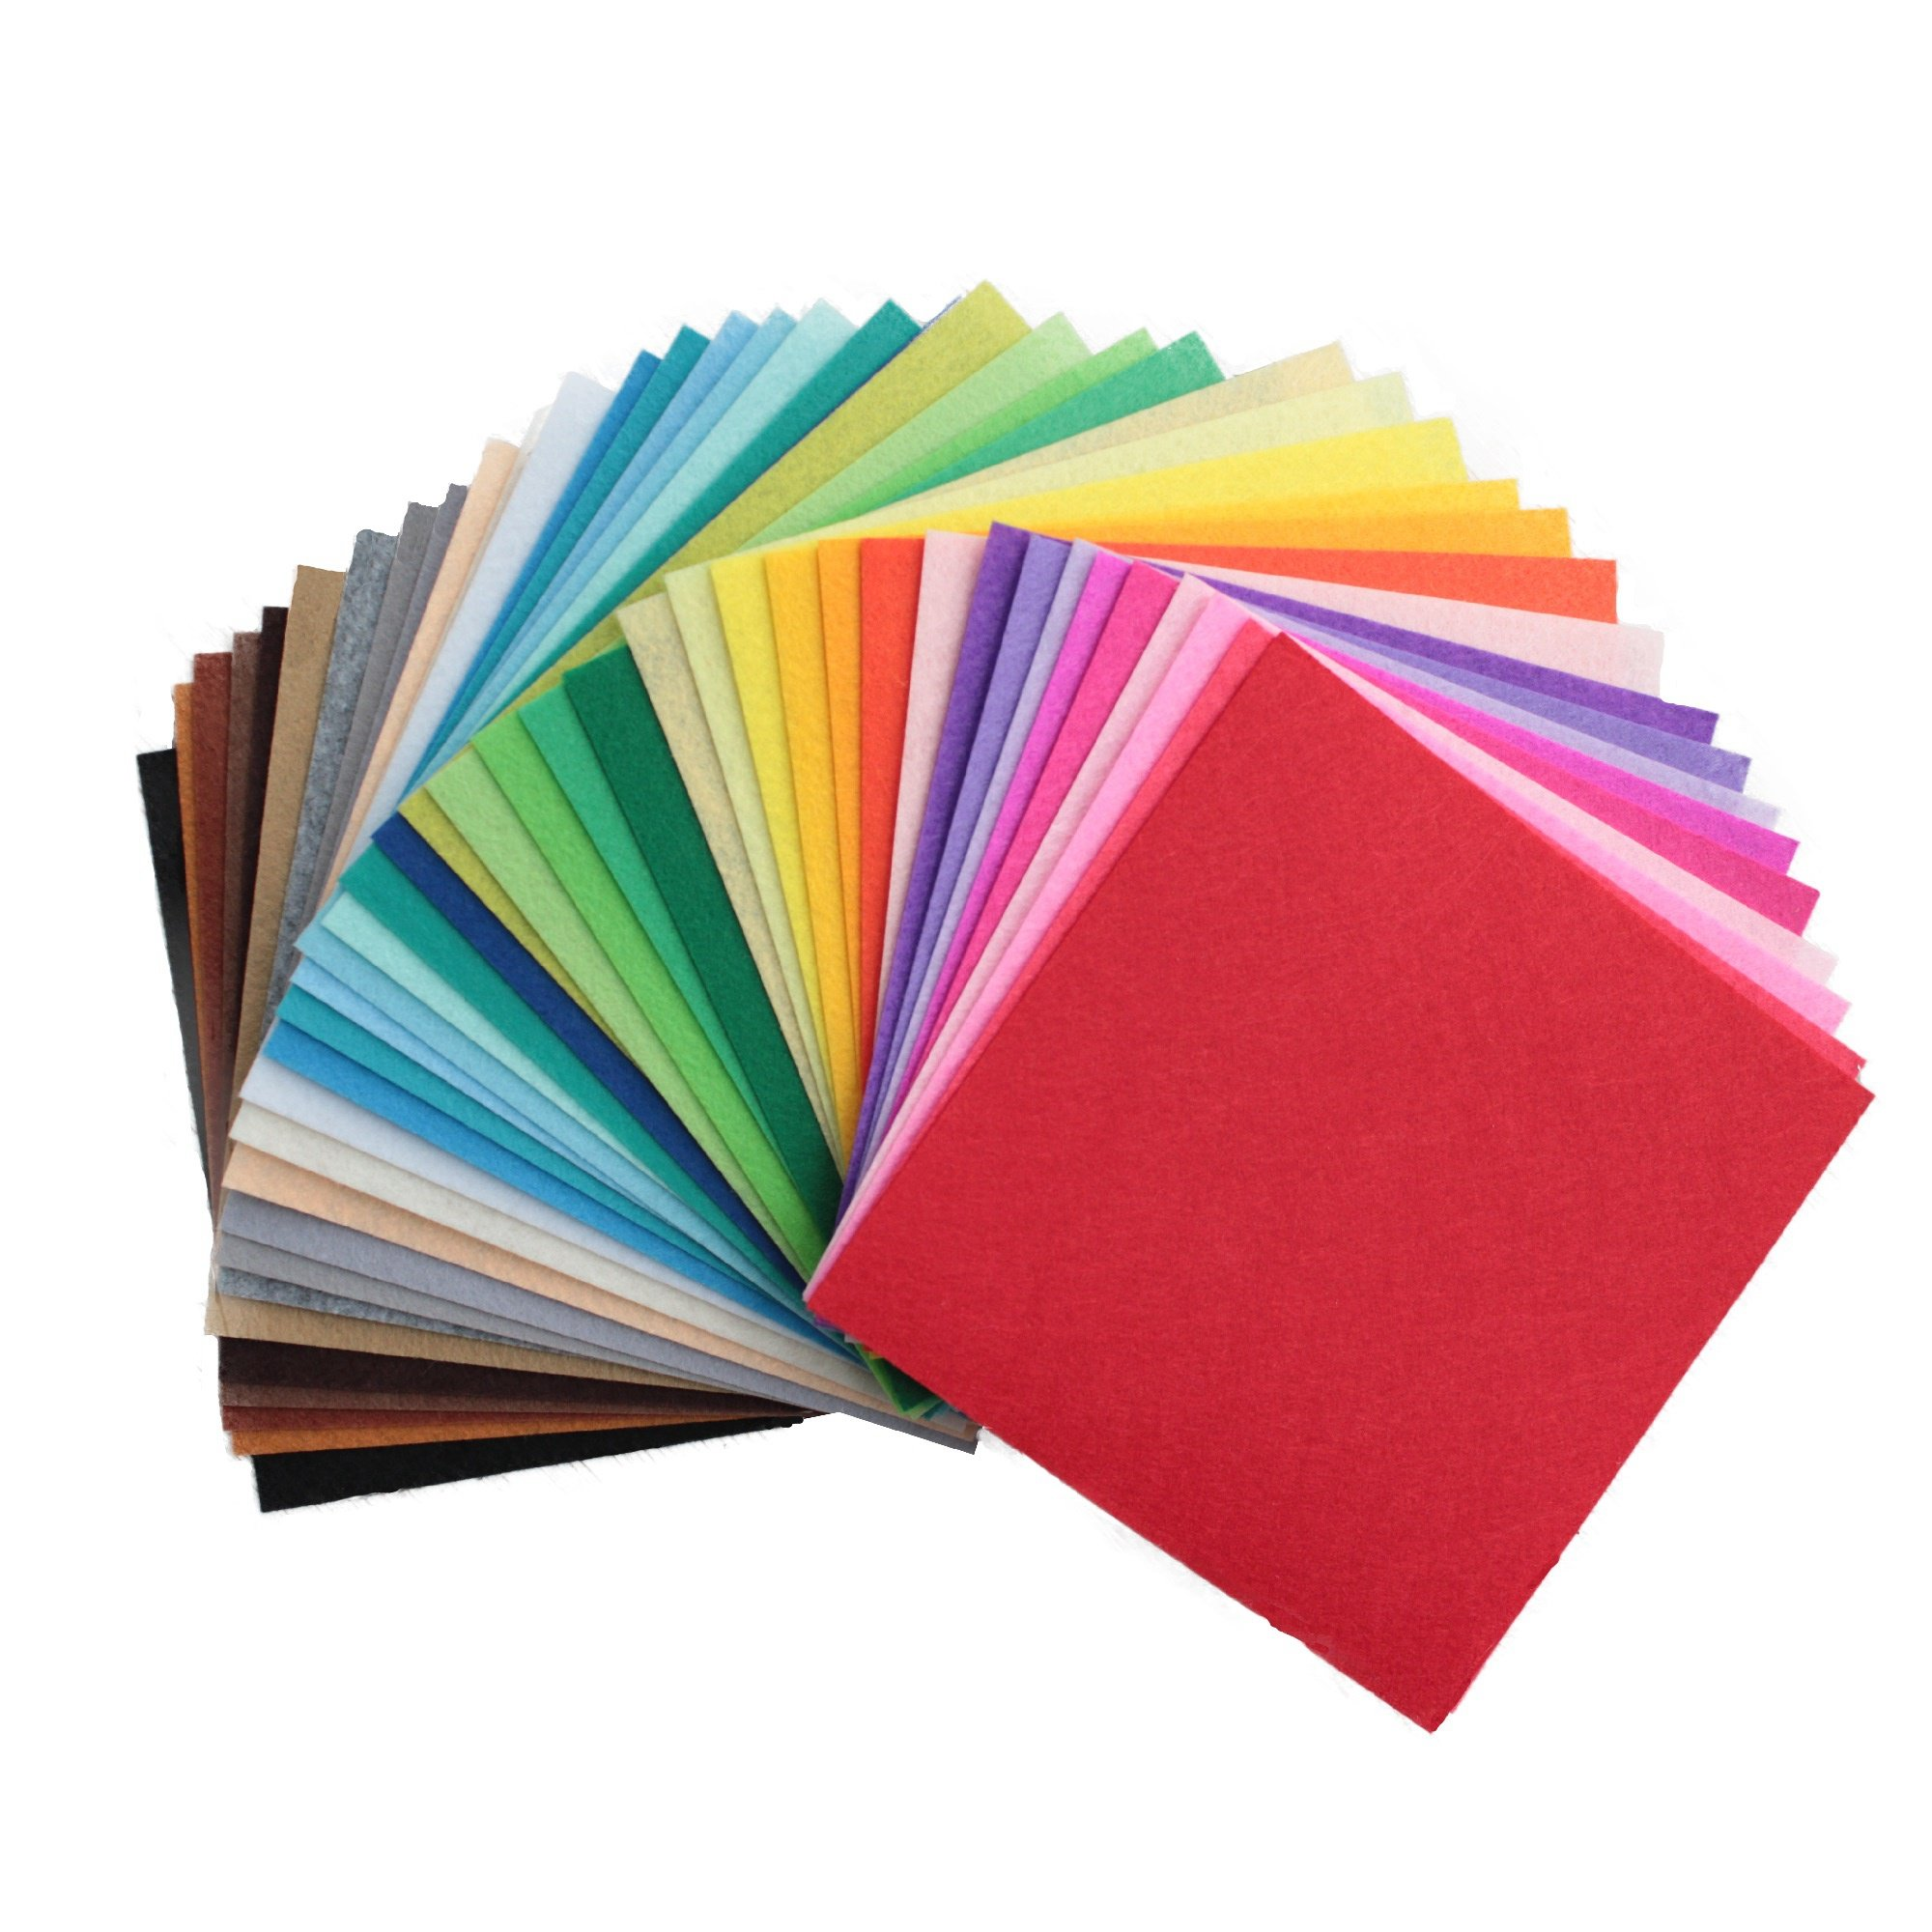 Life Glow DIY Polyester Stiff Felt Fabric Squares Sheets Assorted Colors 12x12 inch for Crafts, 1mm Thick 40Pcs by Life Glow (Image #2)